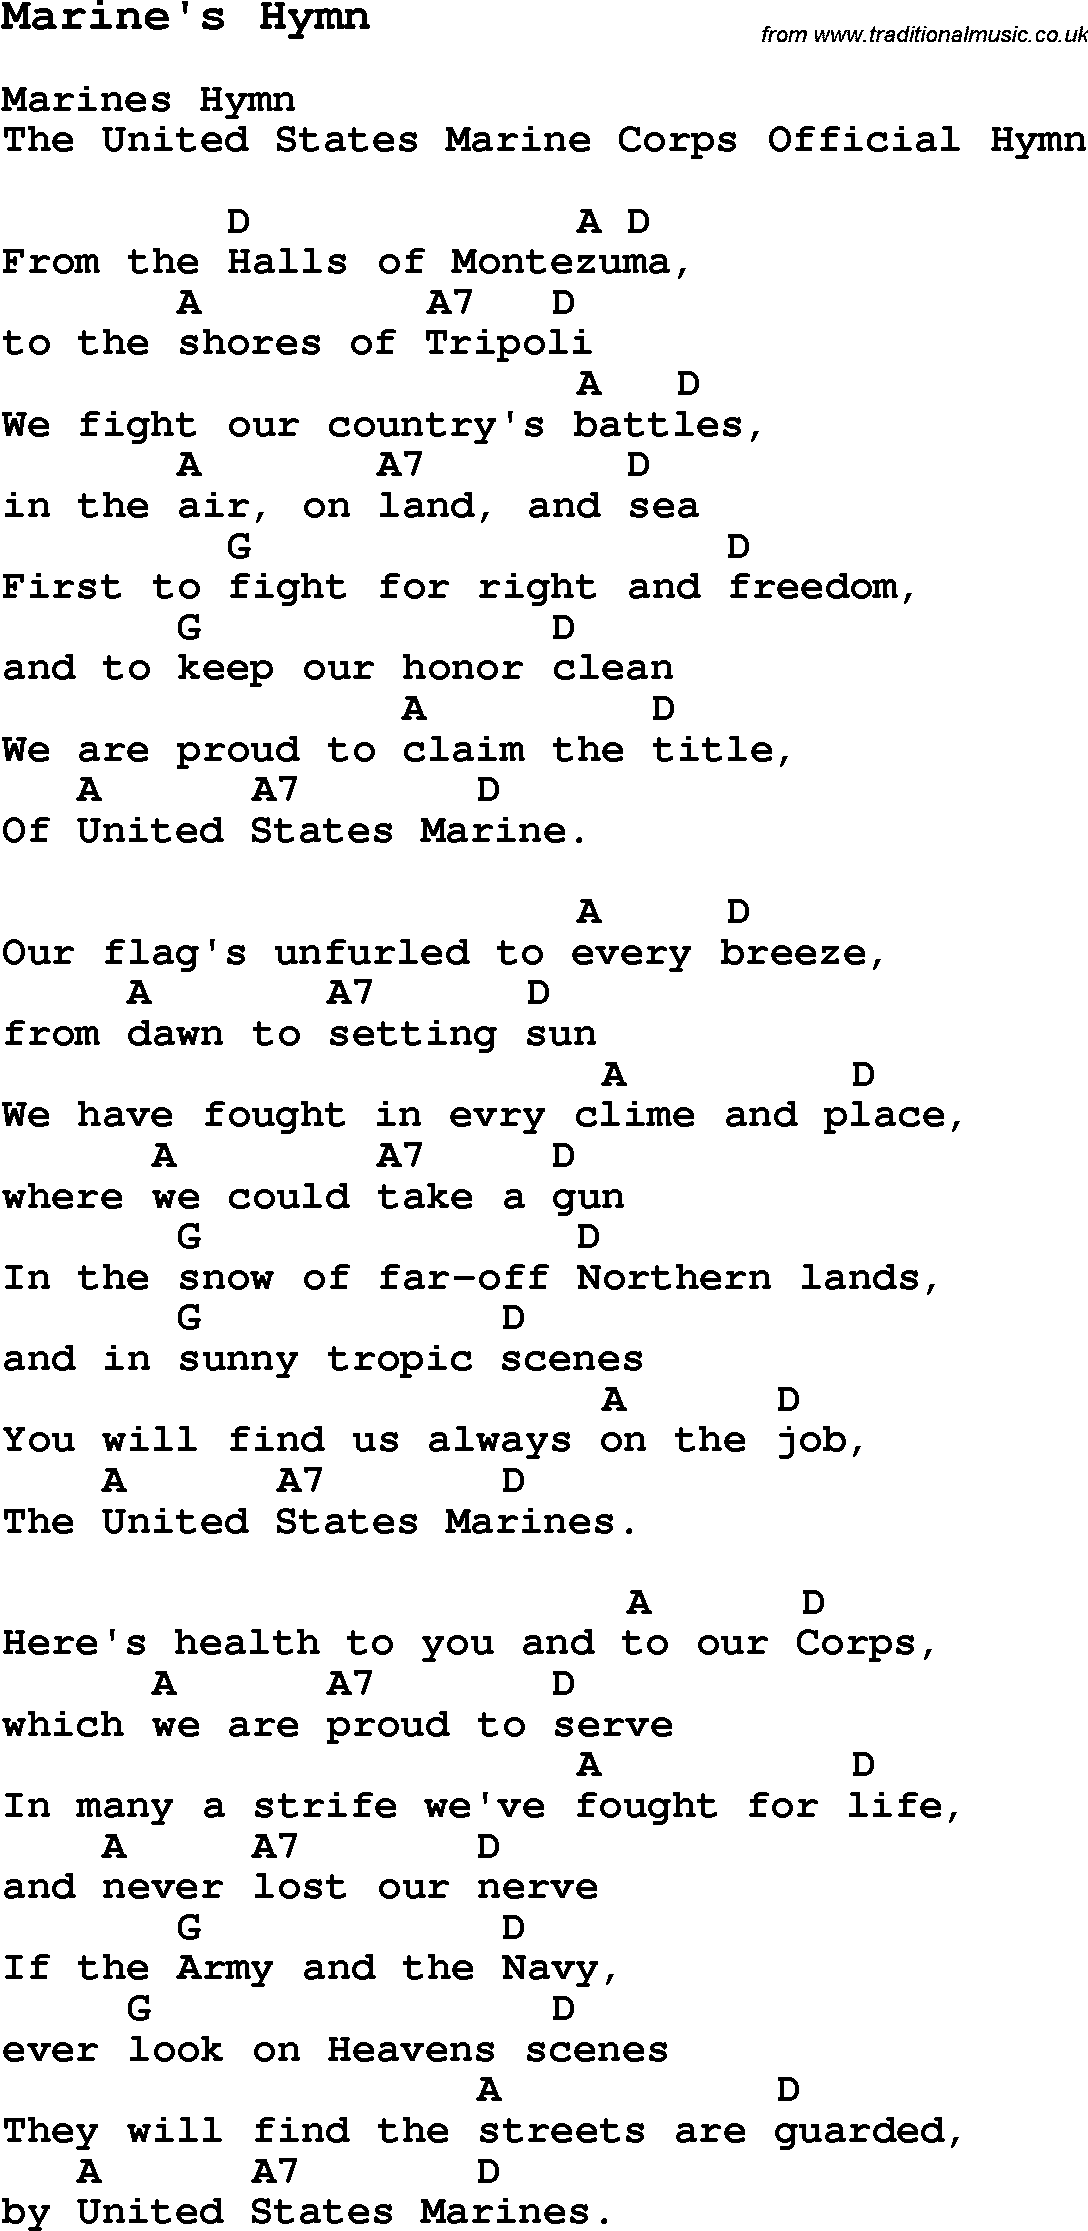 Summer Camp Song, Marine's Hymn, with lyrics and chords ...